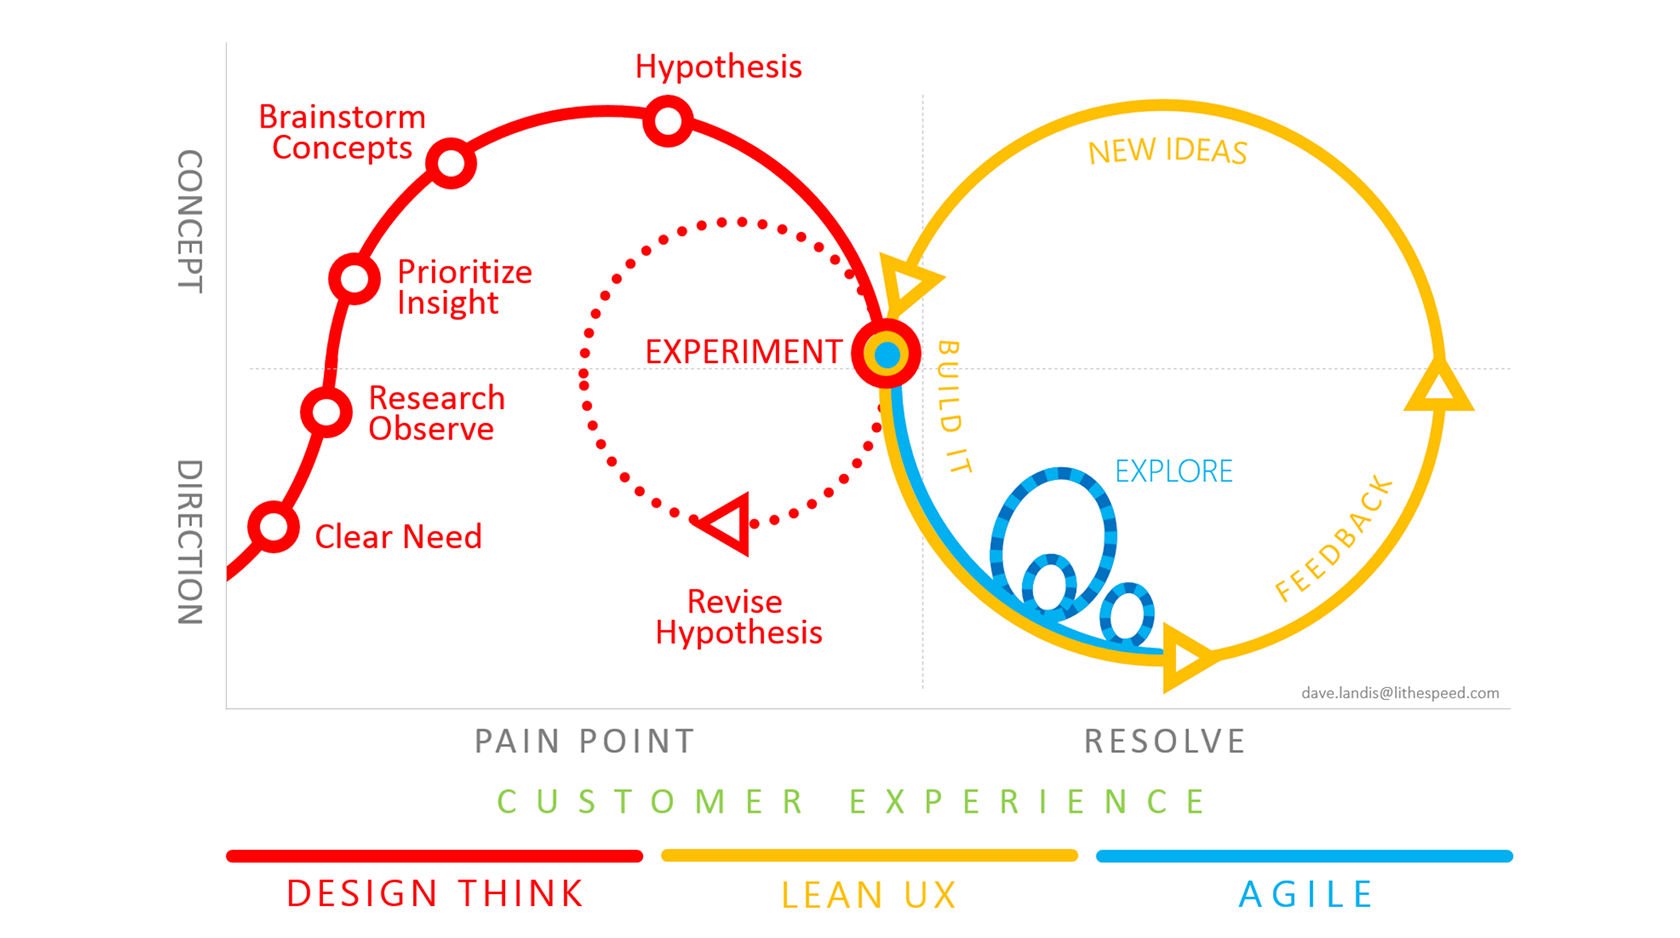 Interactive prototypes are part of a Lean UX and Agile design process